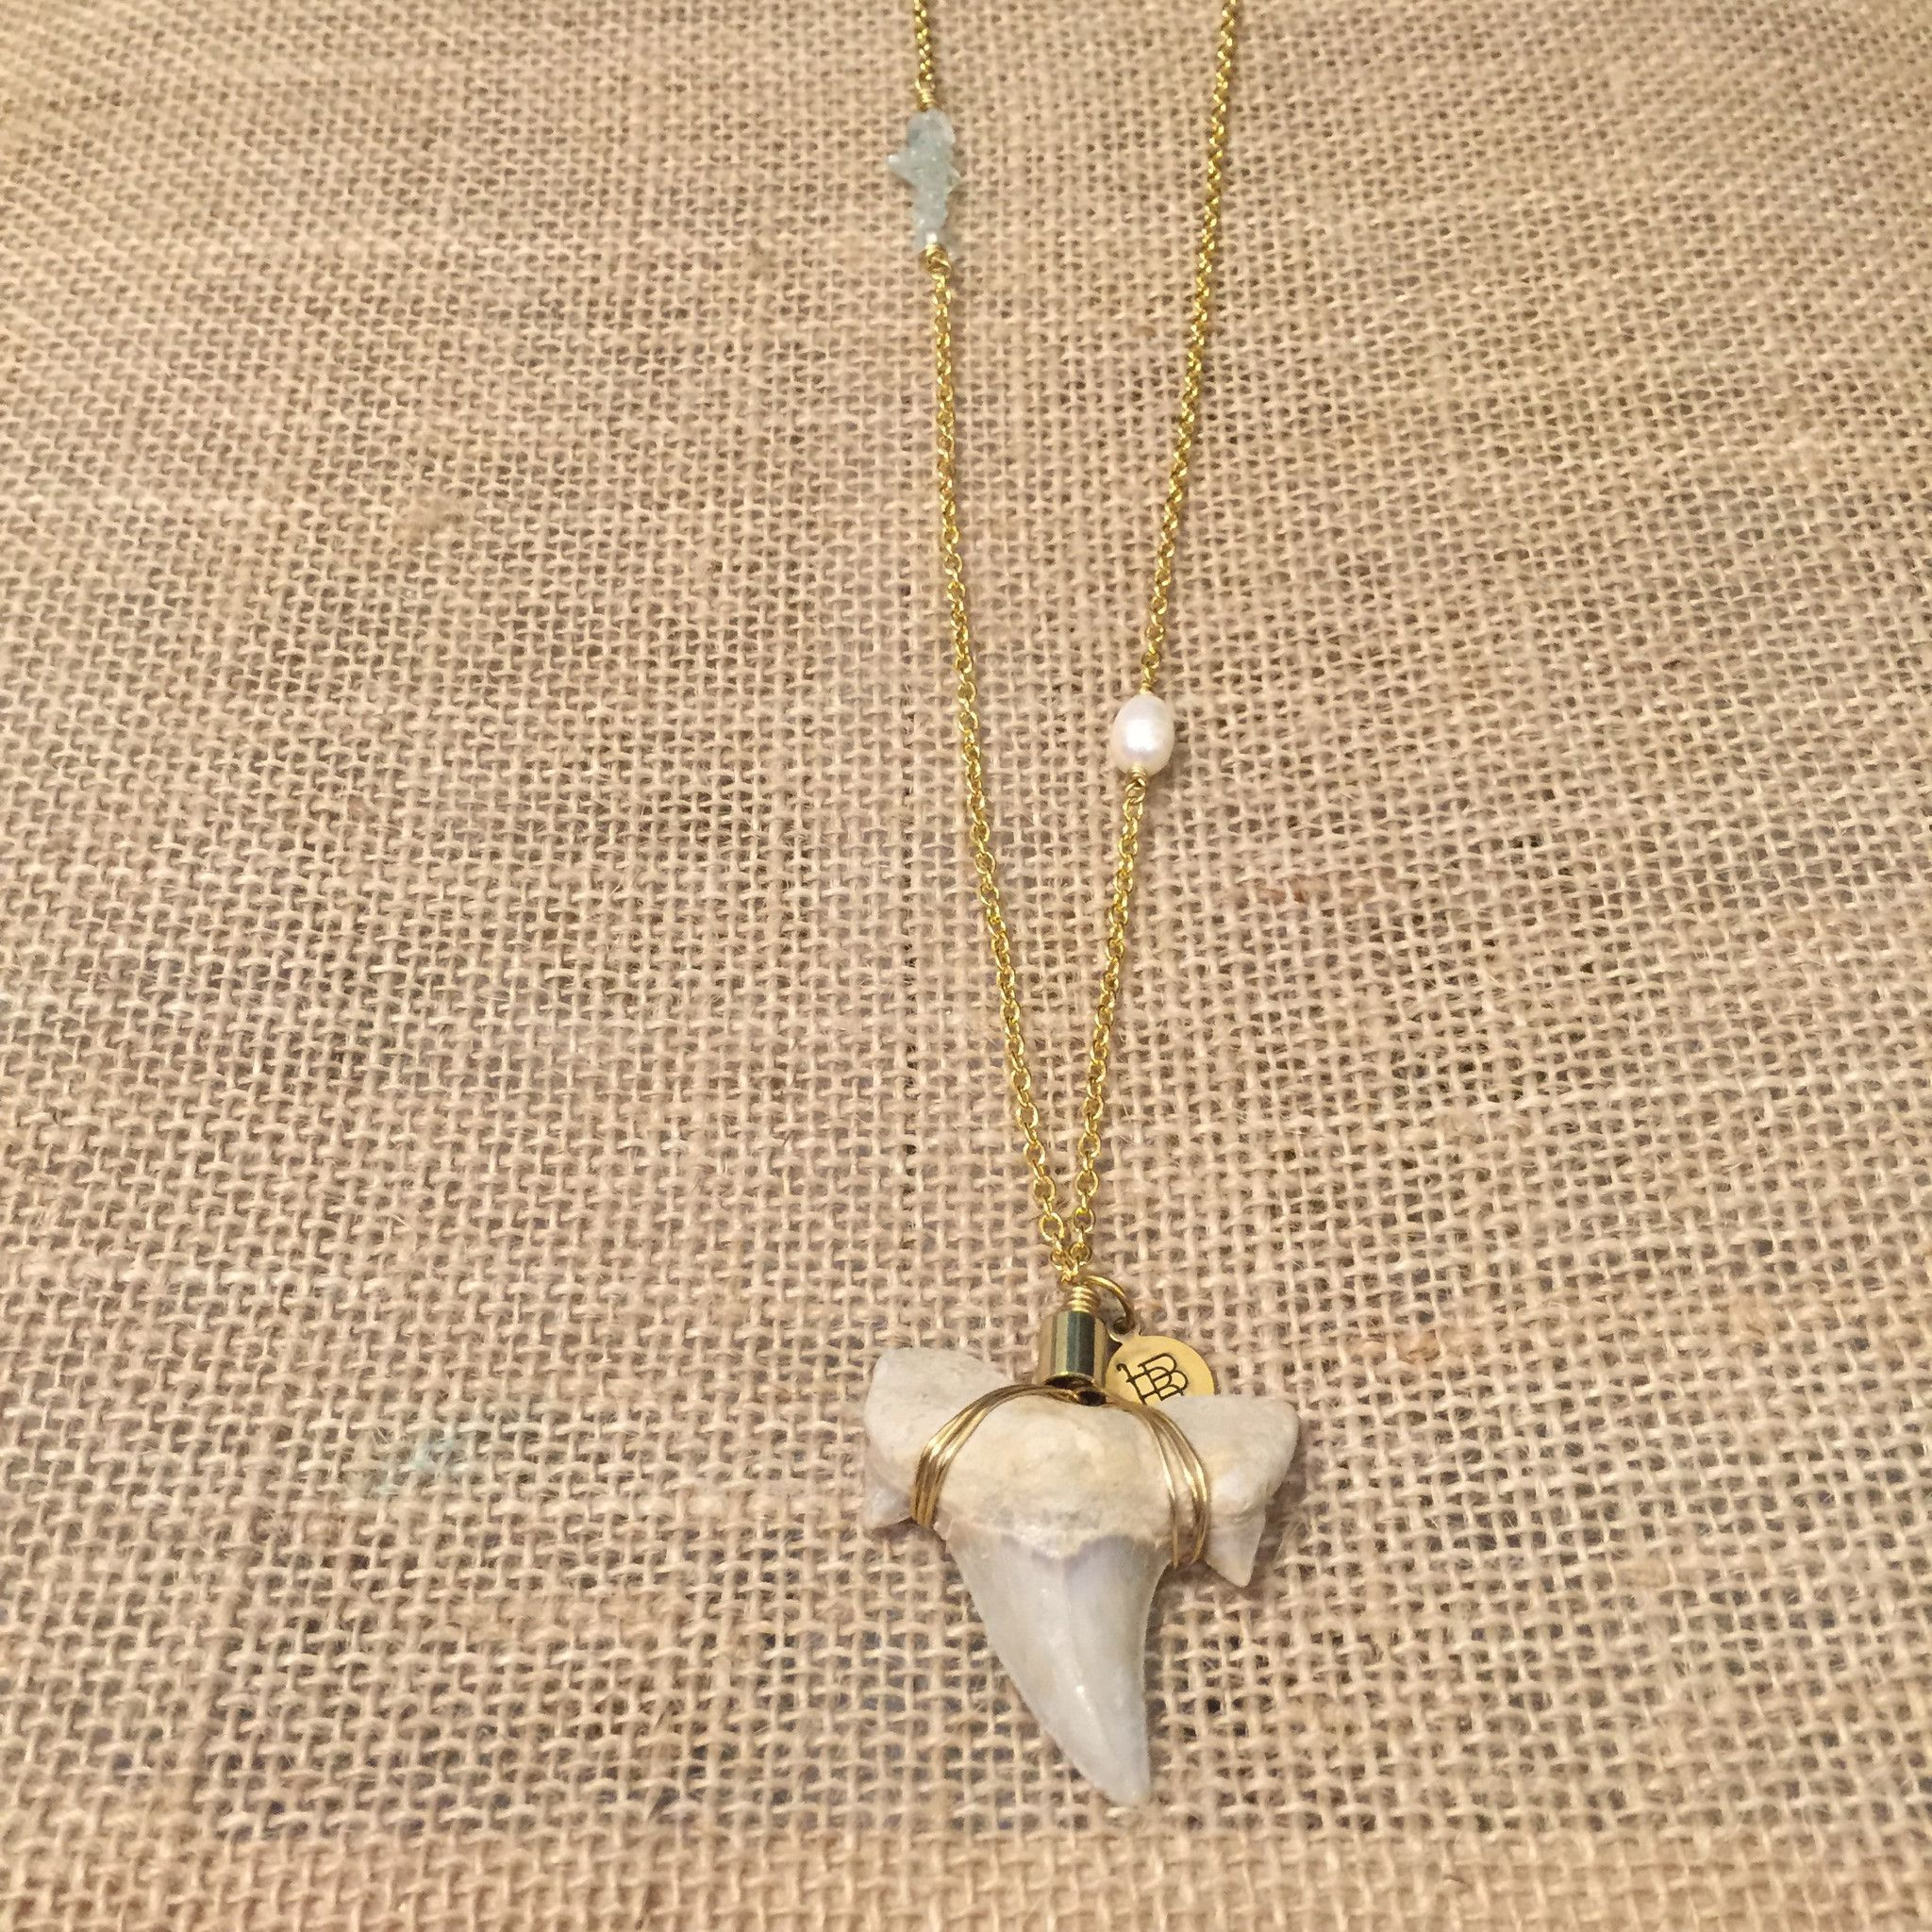 shark hammerhead pendant necklace